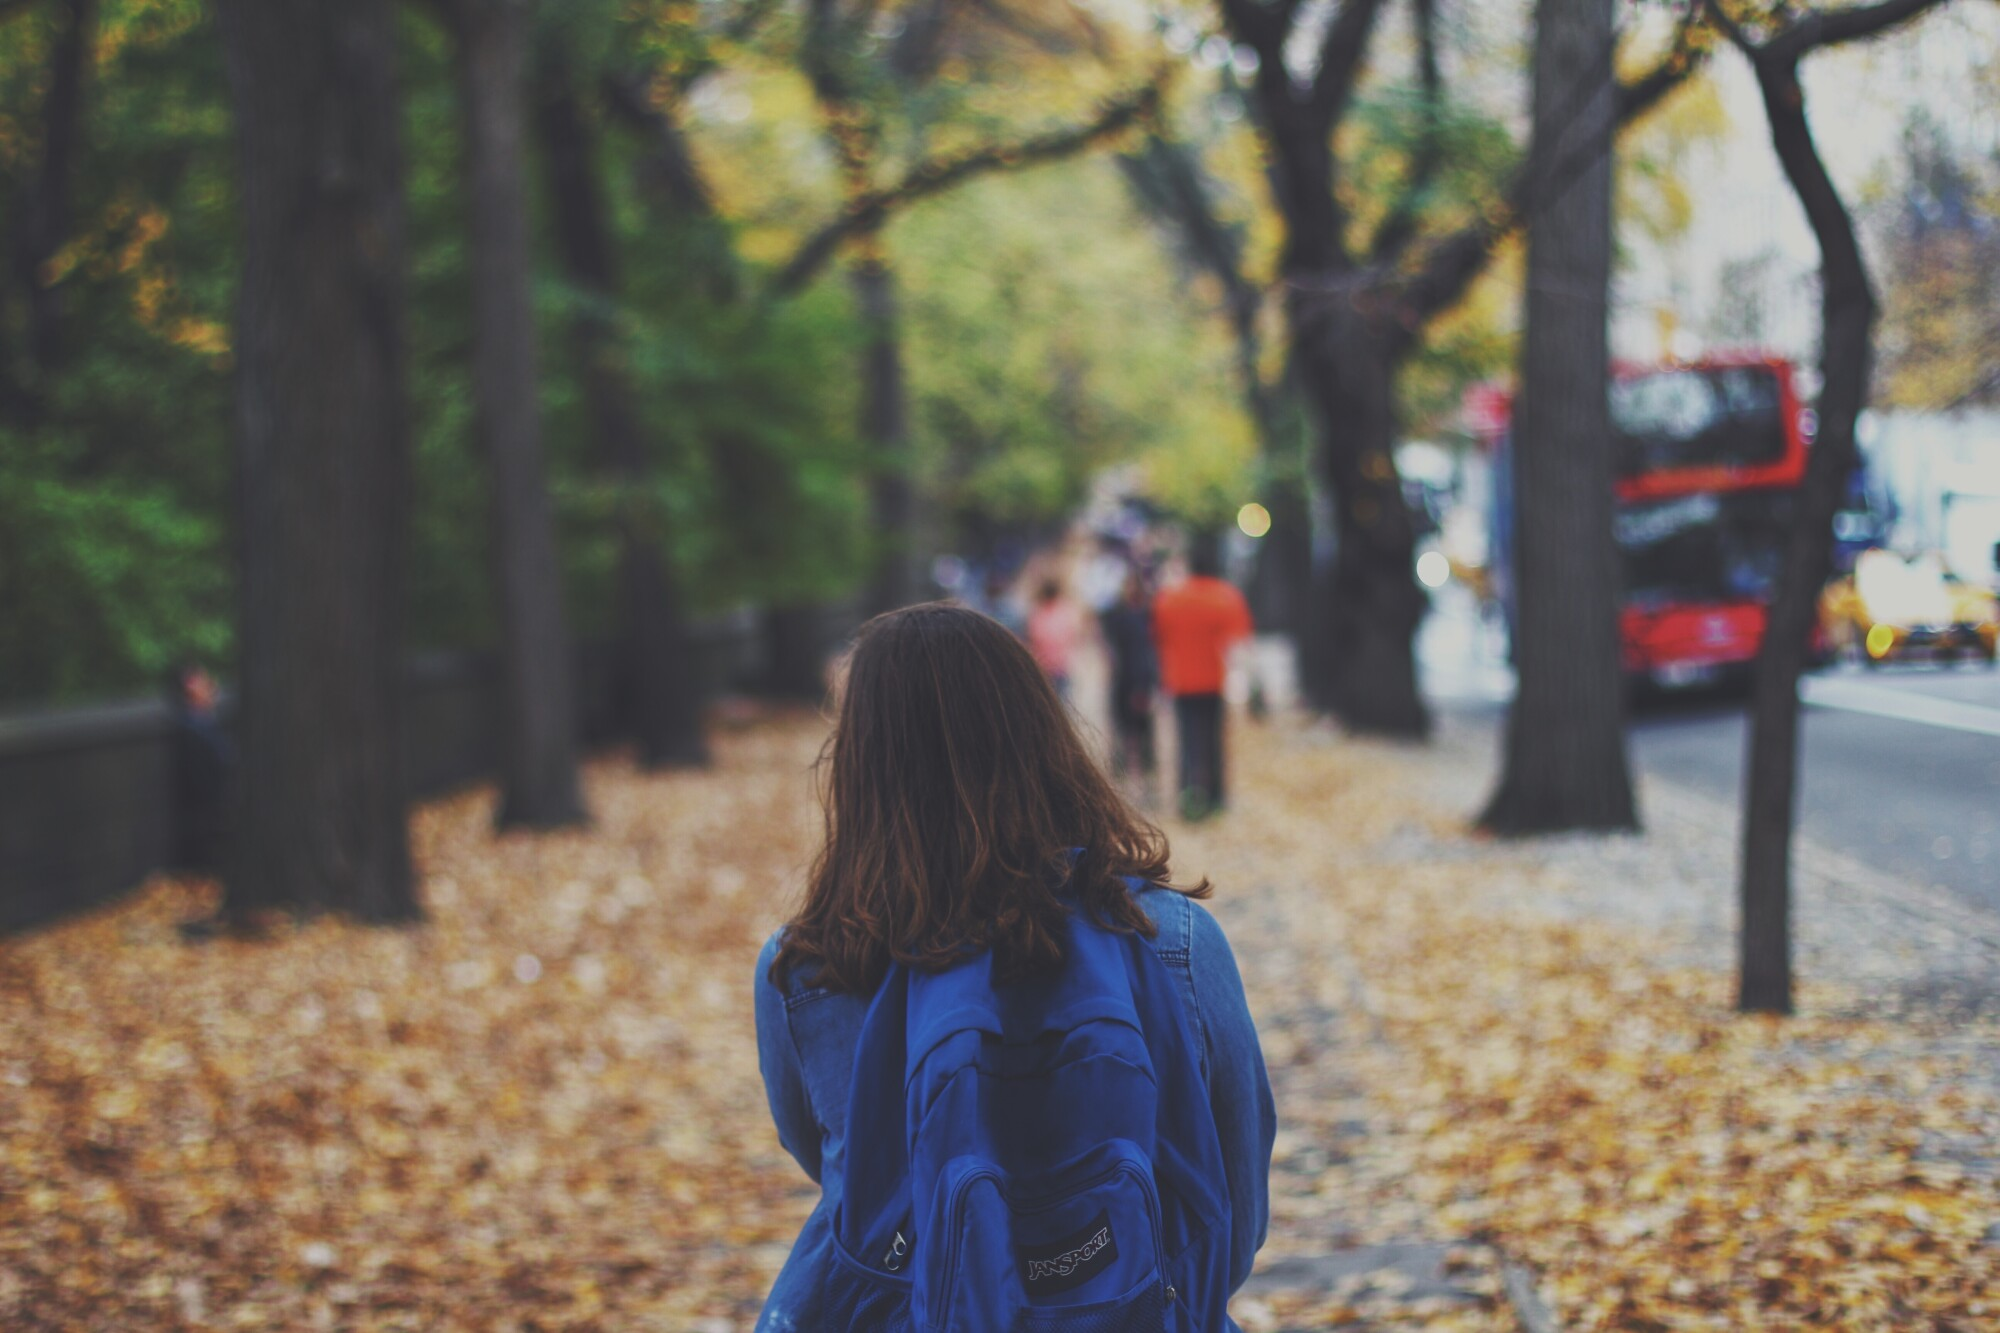 preparing your child to walk home from school